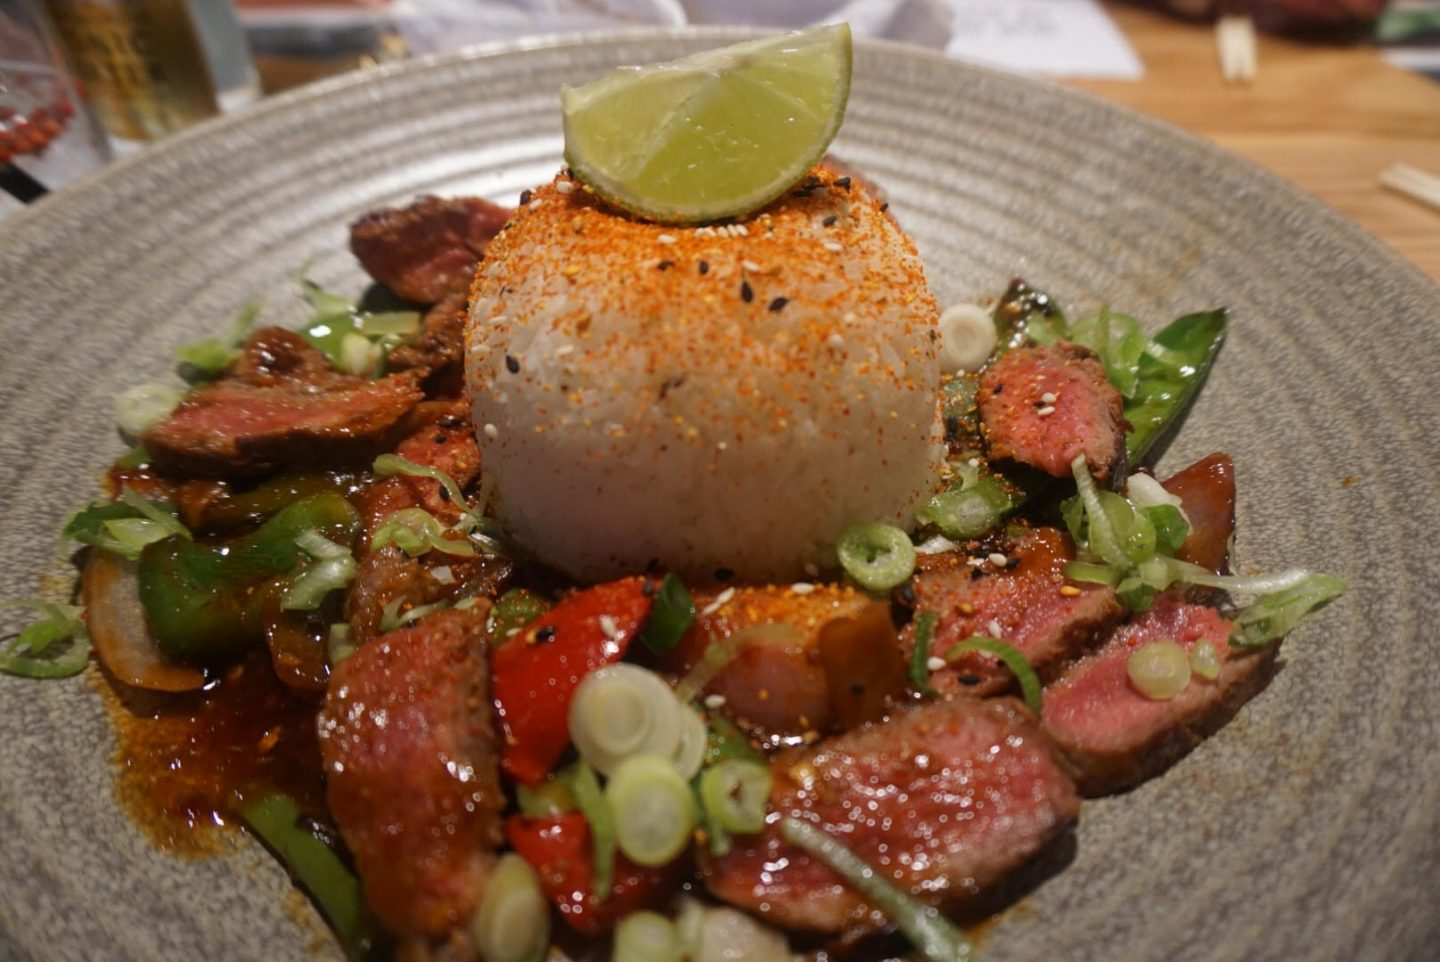 Wagamama - Edinburgh food blogger review